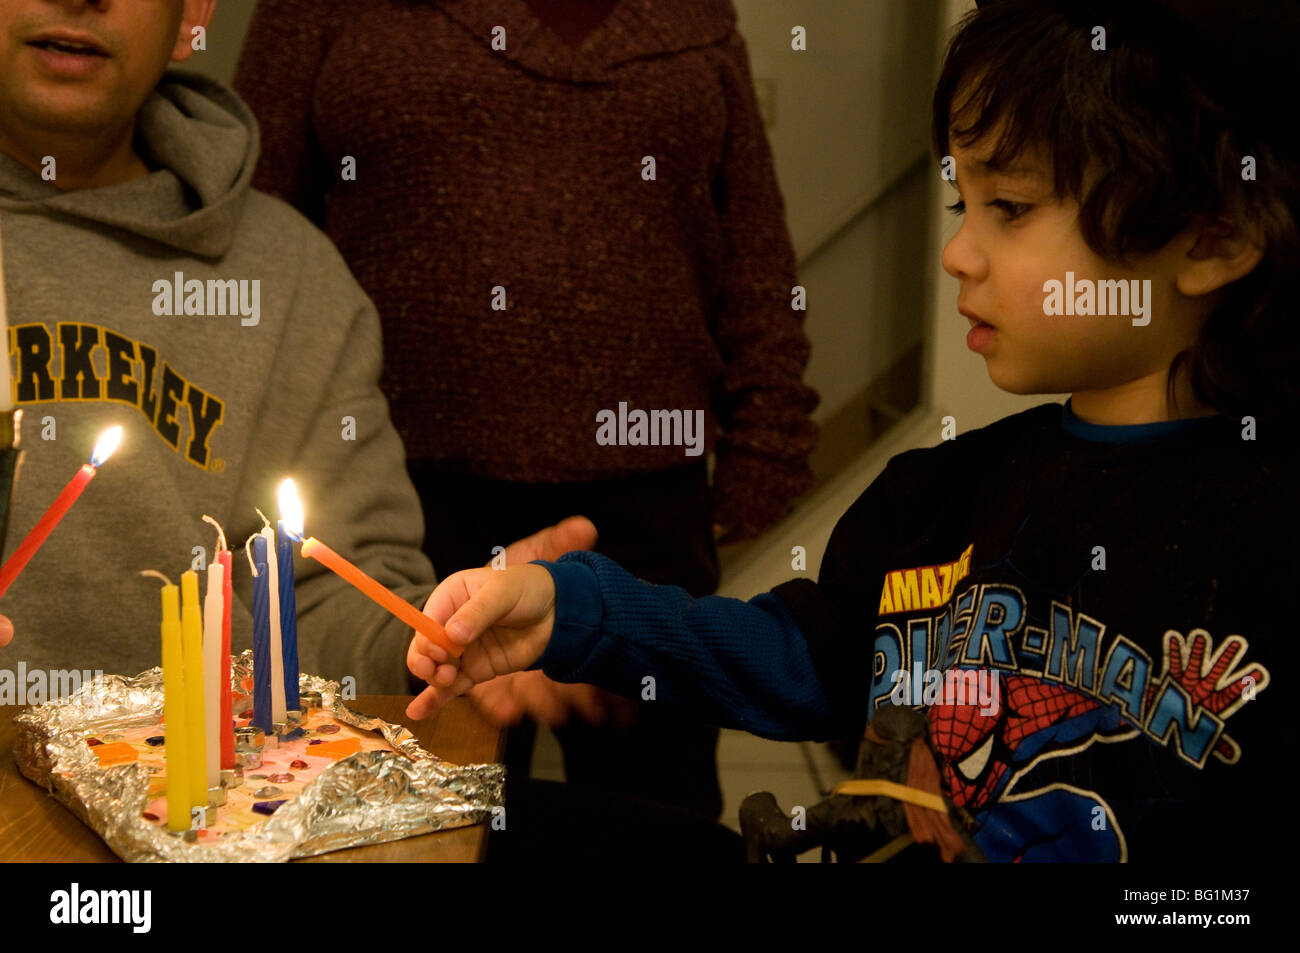 Lighting up the Chanukia during the Jewish festival of Hanukkah. - Stock Image